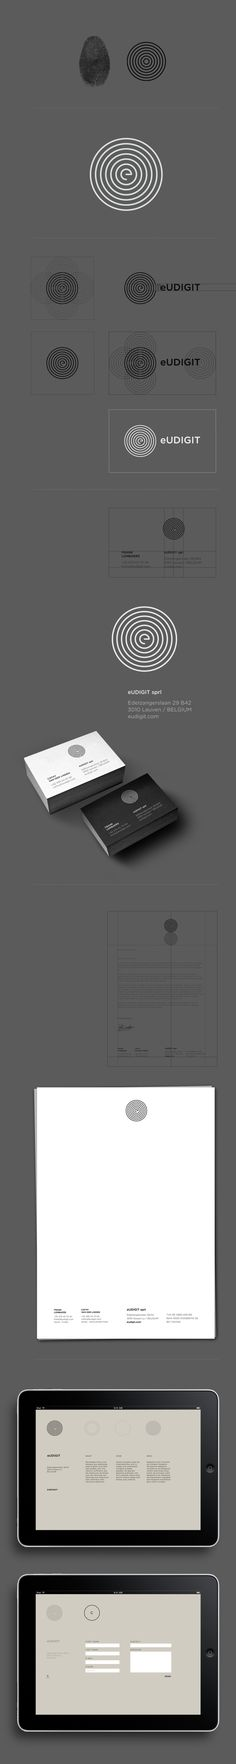 eUDIGIT by olivier rensonnet, via Behance